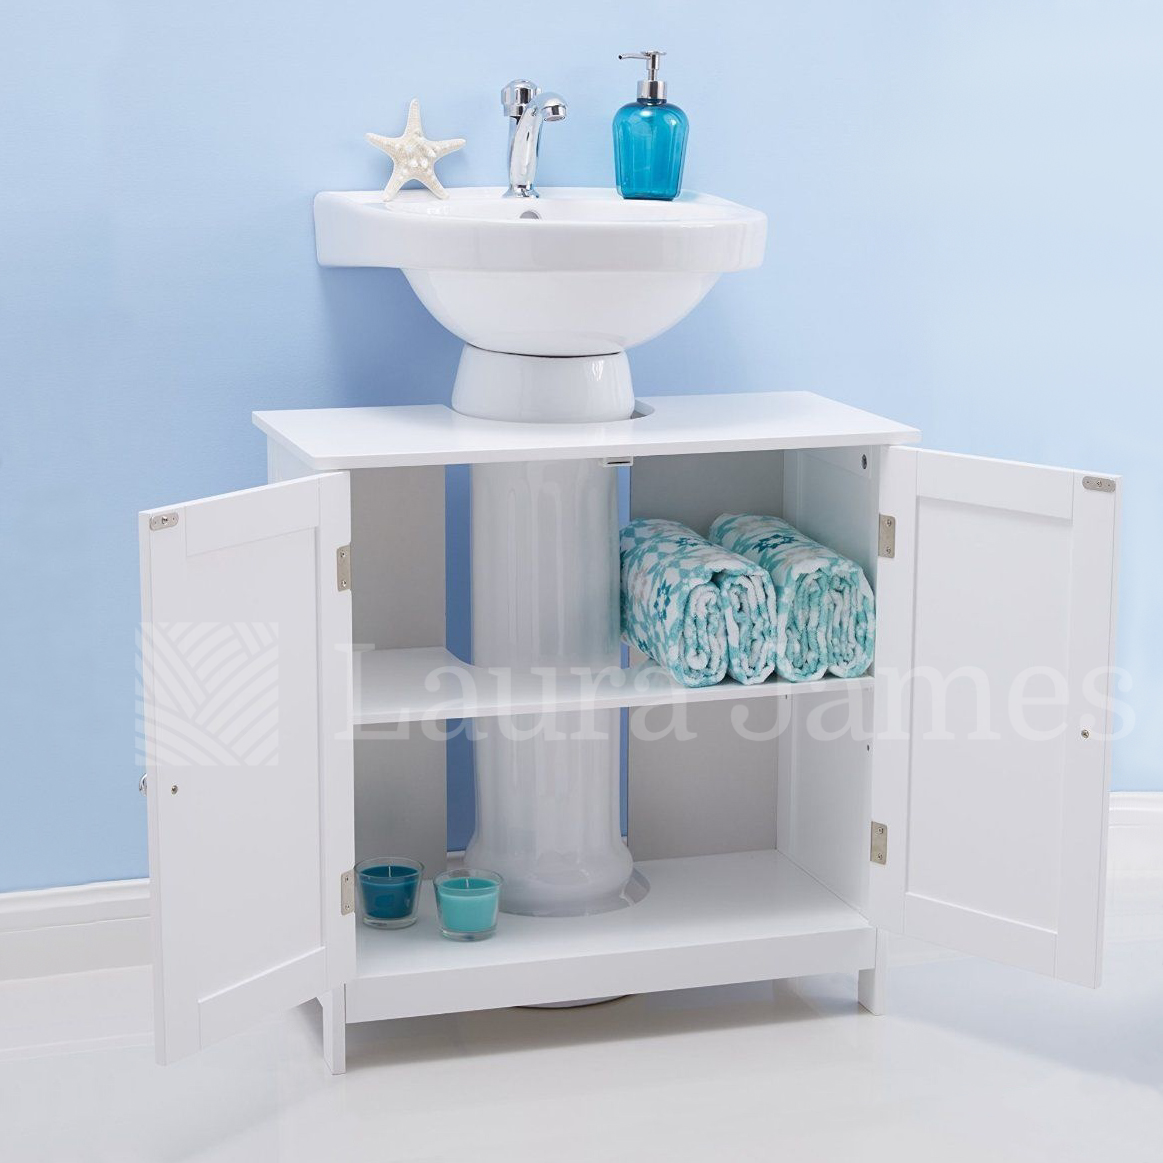 Under sink bathroom cabinet storage unit cupboard white ebay for Bathroom under sink organizer